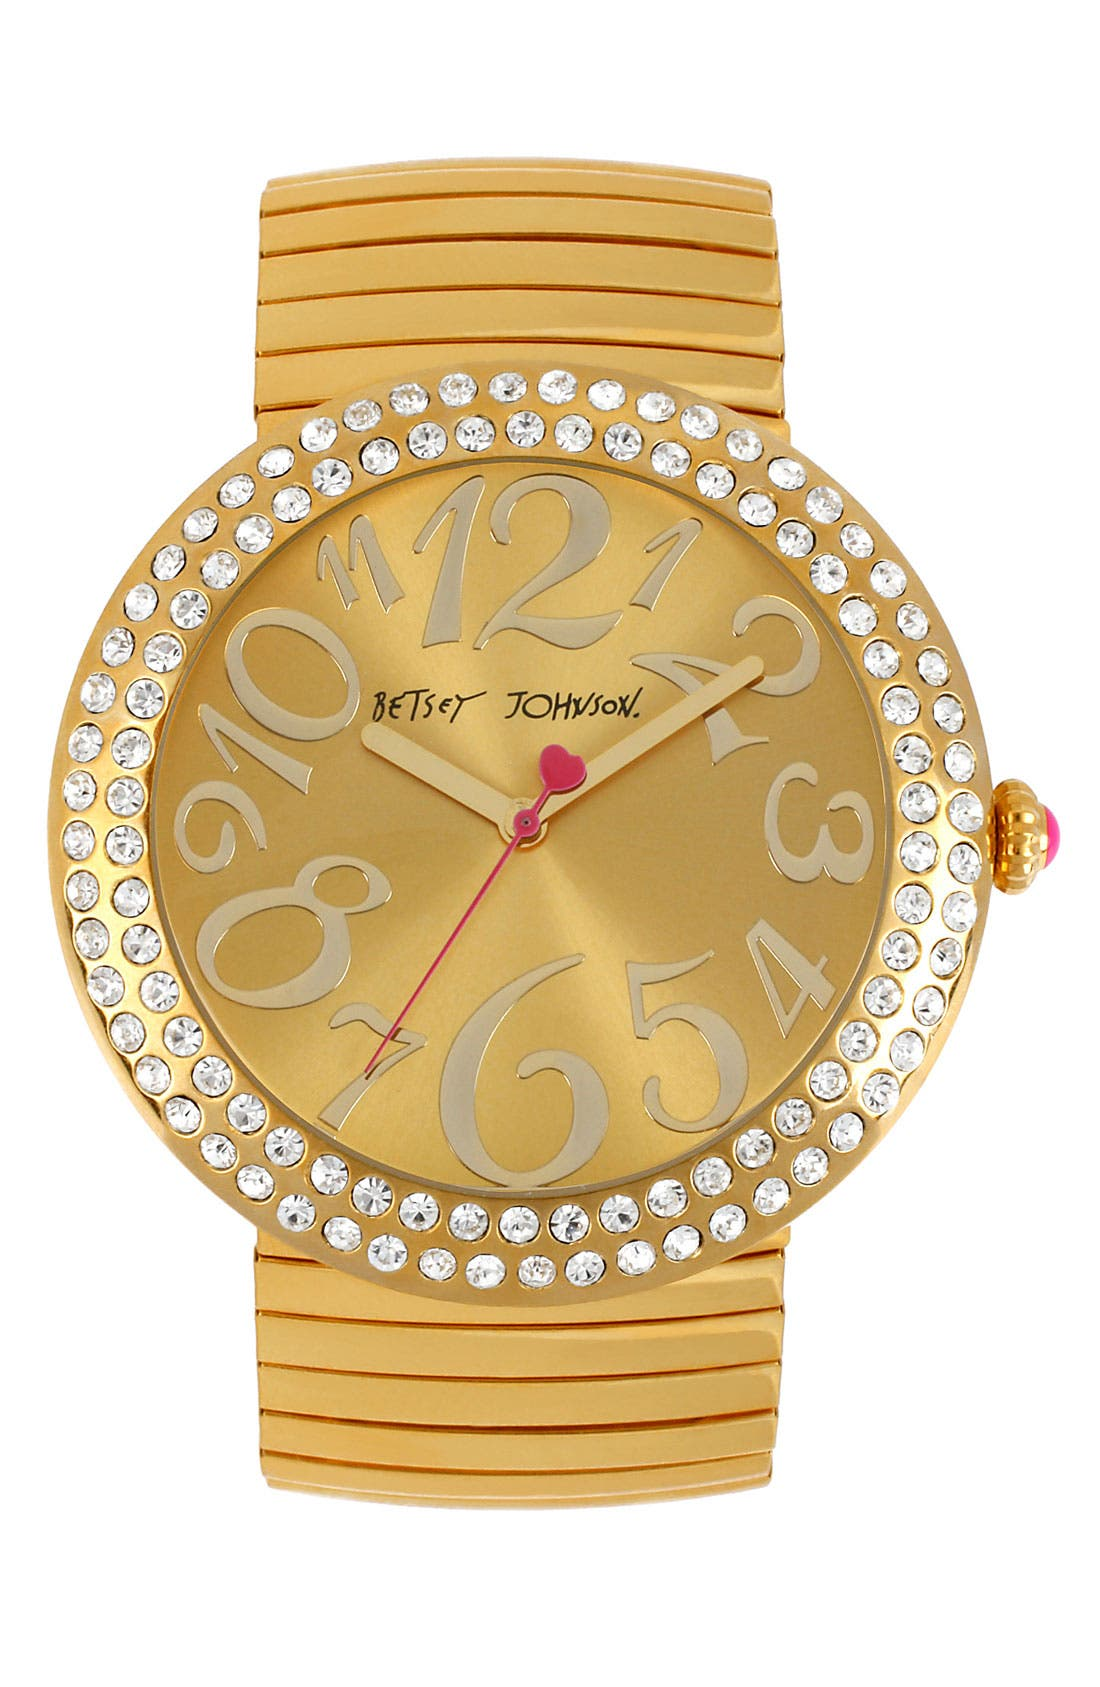 Main Image - Betsey Johnson Crystal Bezel Watch, 50mm